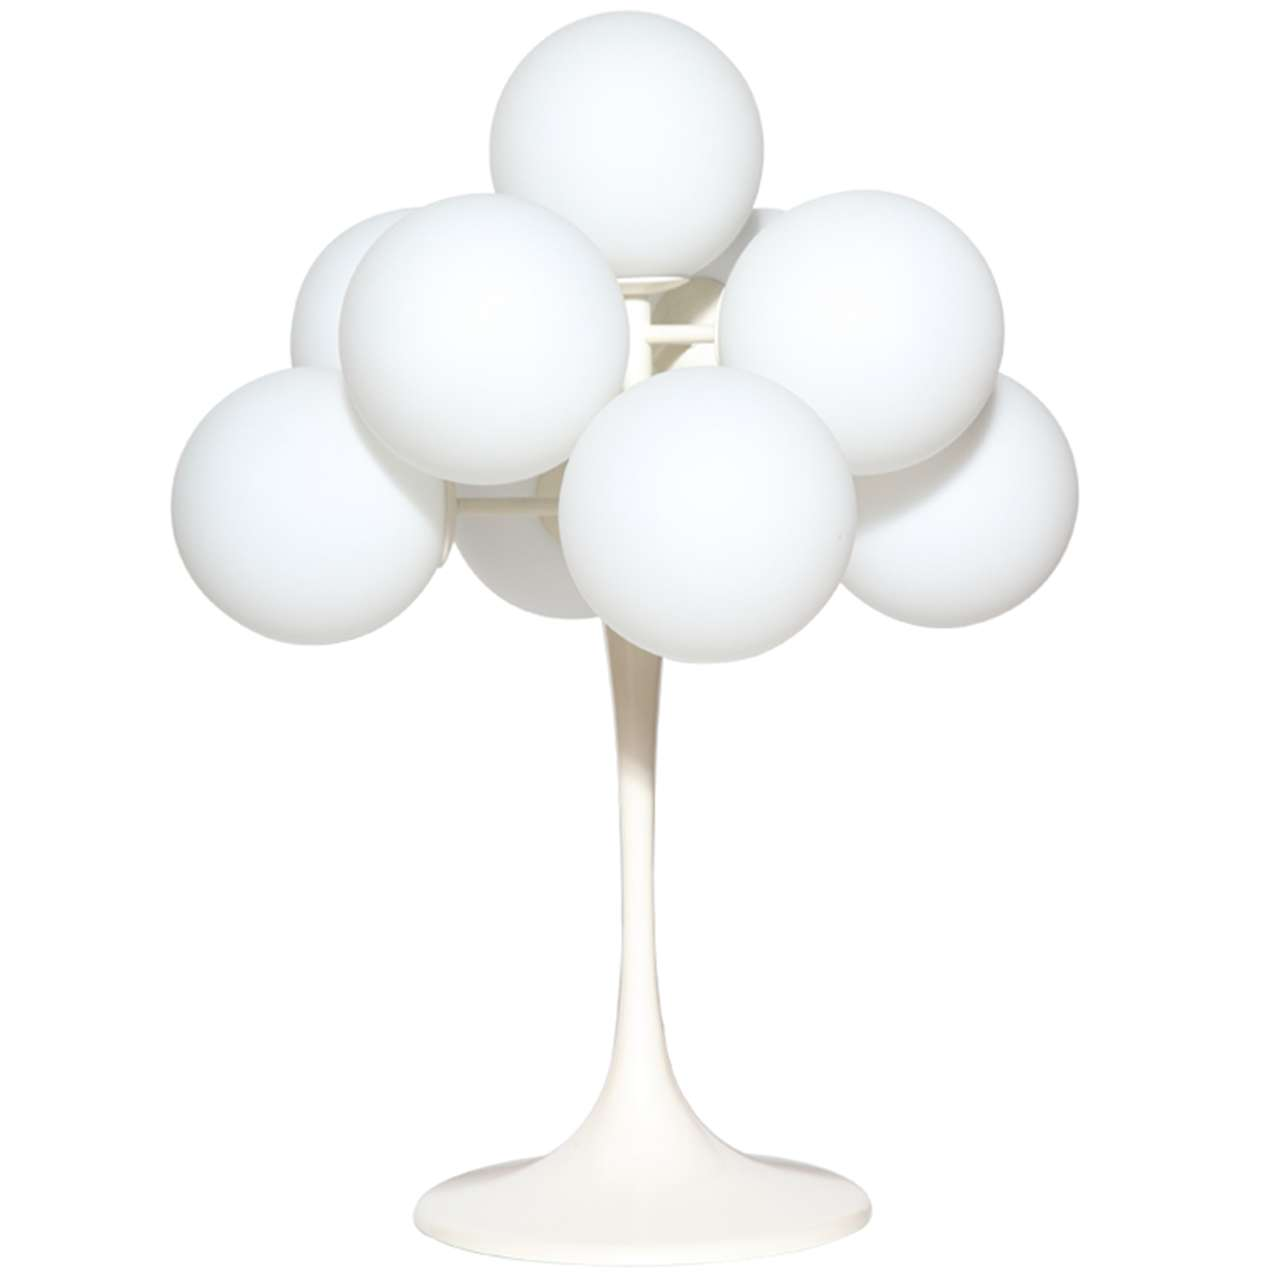 Max Bill Tulip Table Lamp With Nine White Frosted Glass Globes, 1960s For  Sale